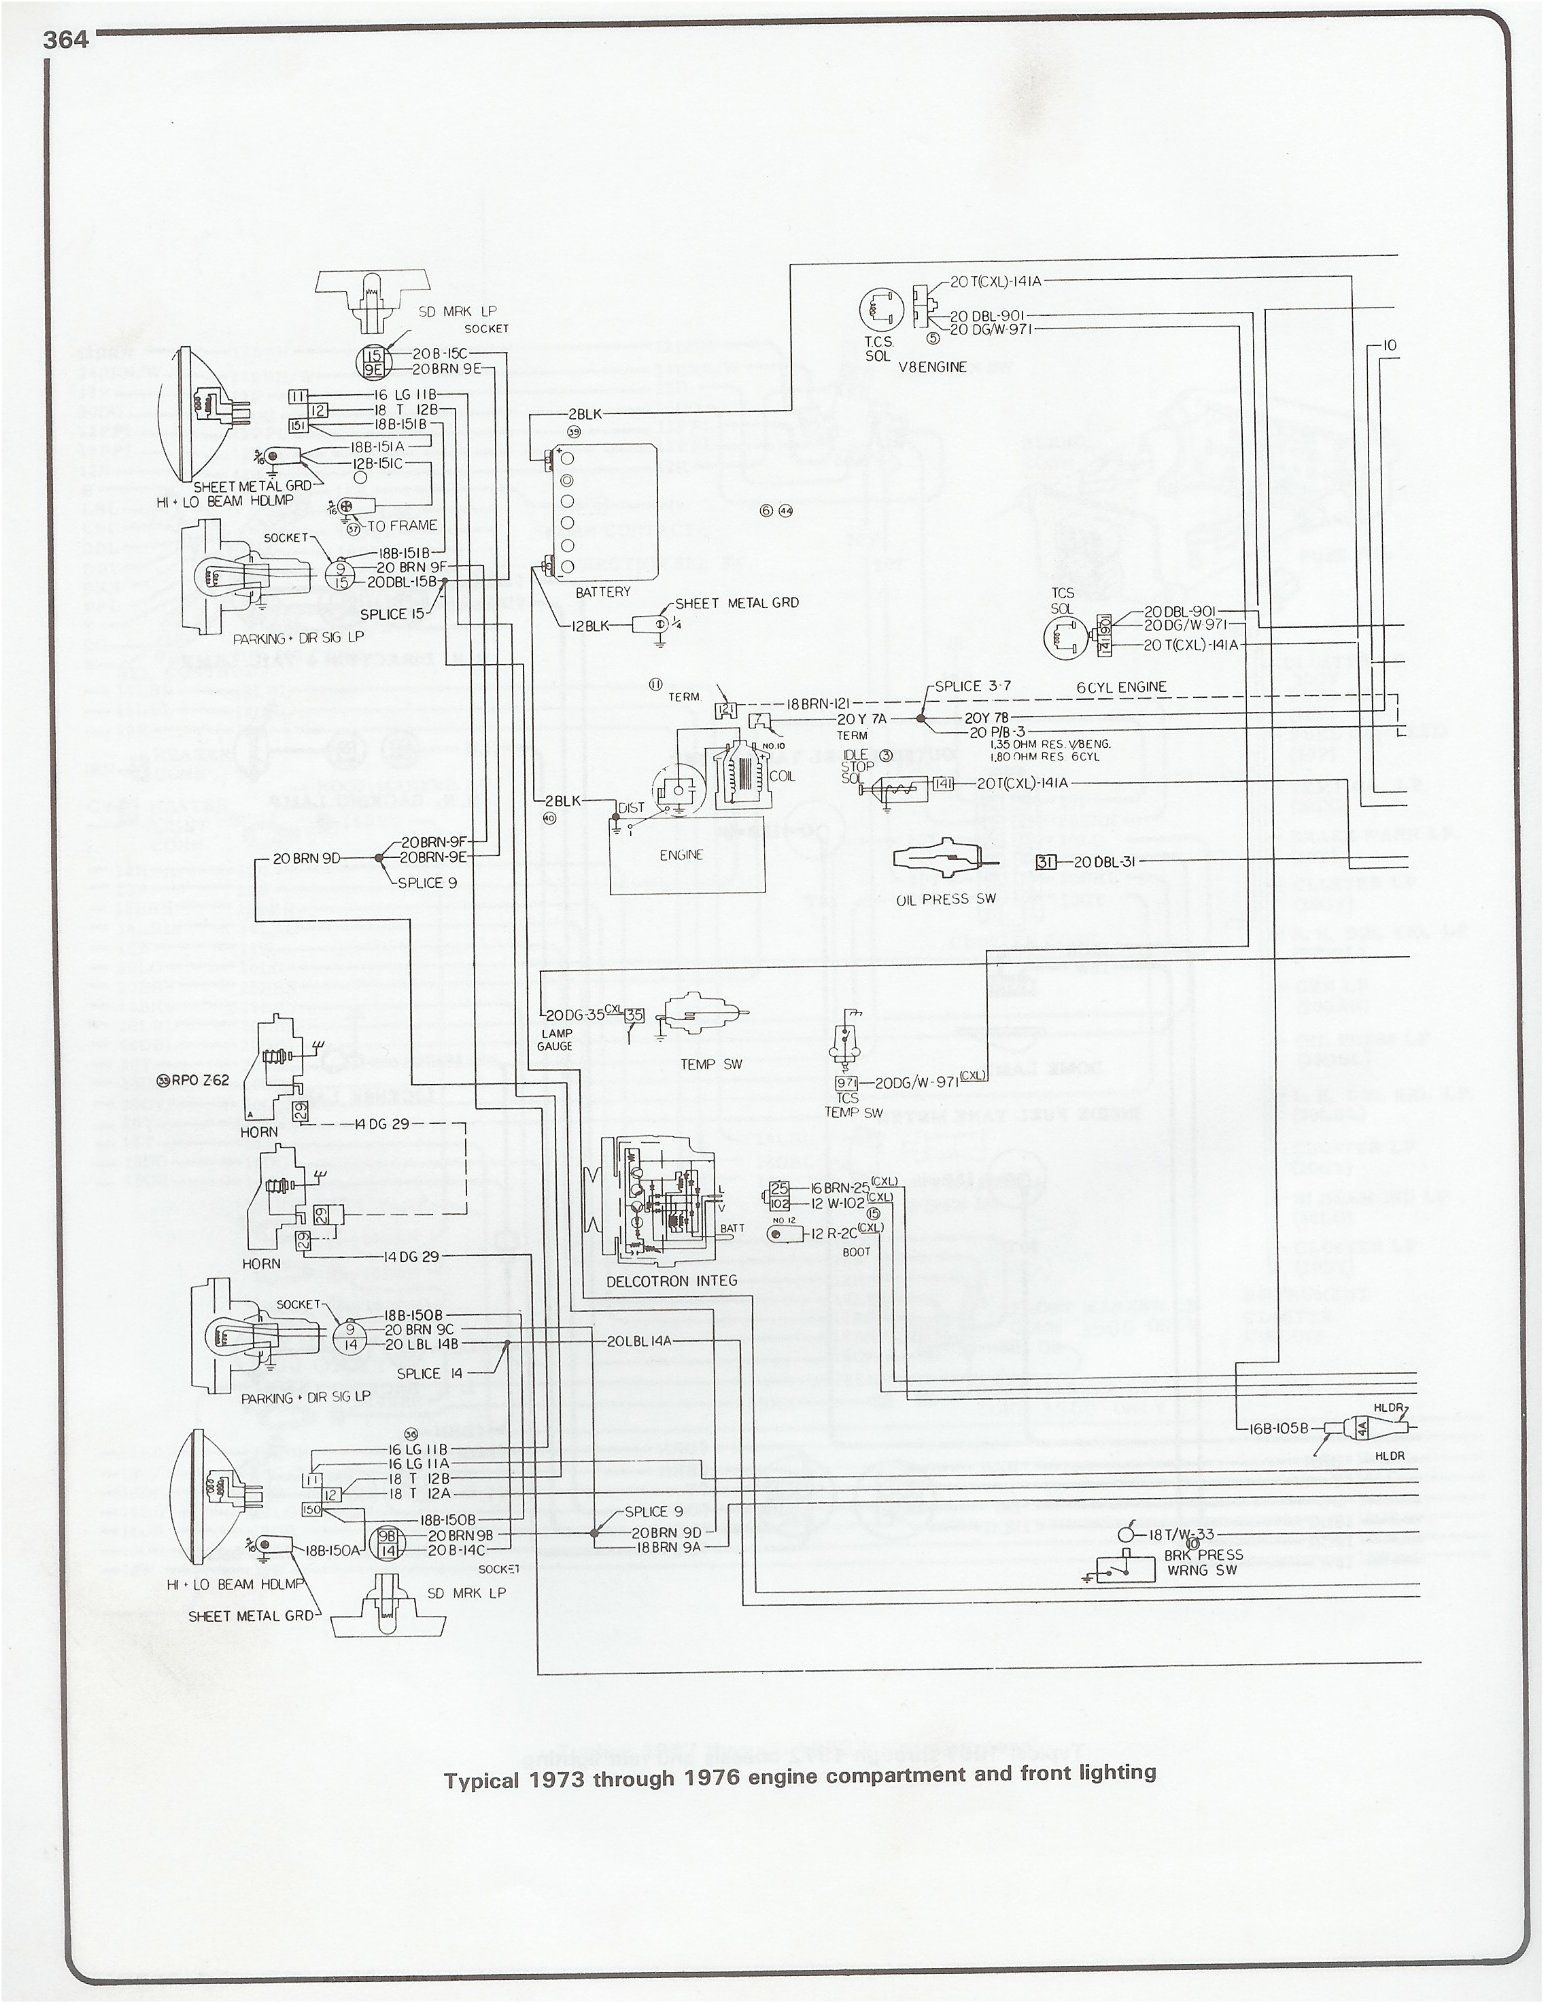 wiring diagram 1973 - 1976 chevy pickup #chevy #wiring # ... 73 chevy c10 wire diagram